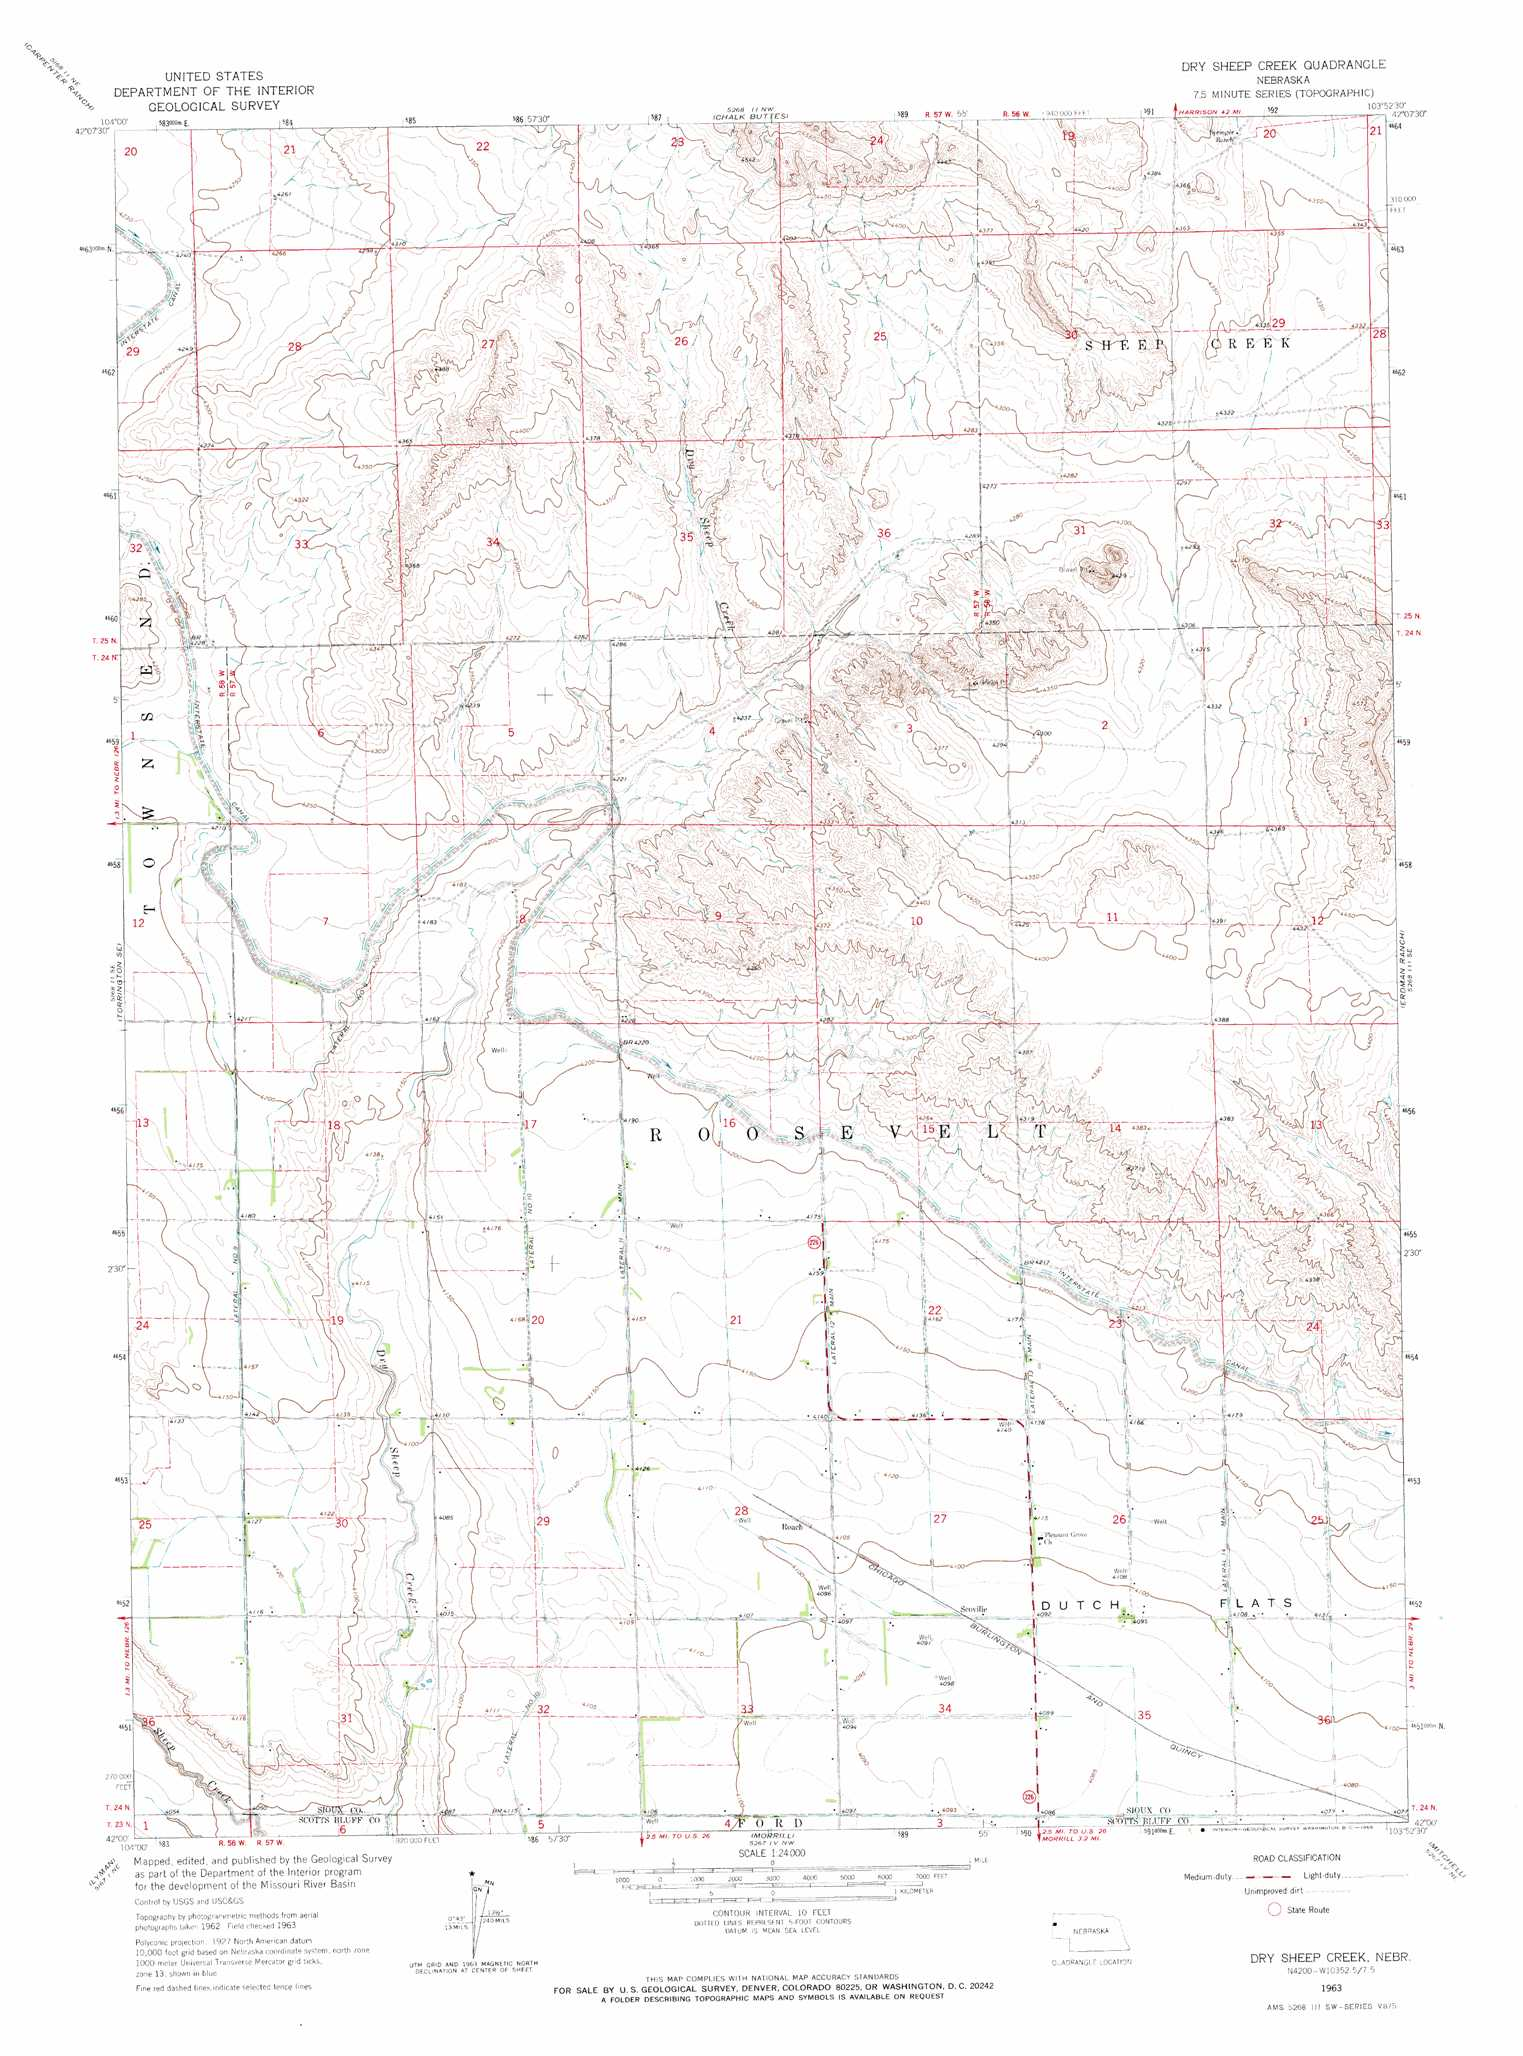 Every Us Highway Drawn In Style Of Transit Map Cameron Booth further 31112a1 besides Carte in addition 42103a8 additionally Florida State Maps. on usa map with cities and roads